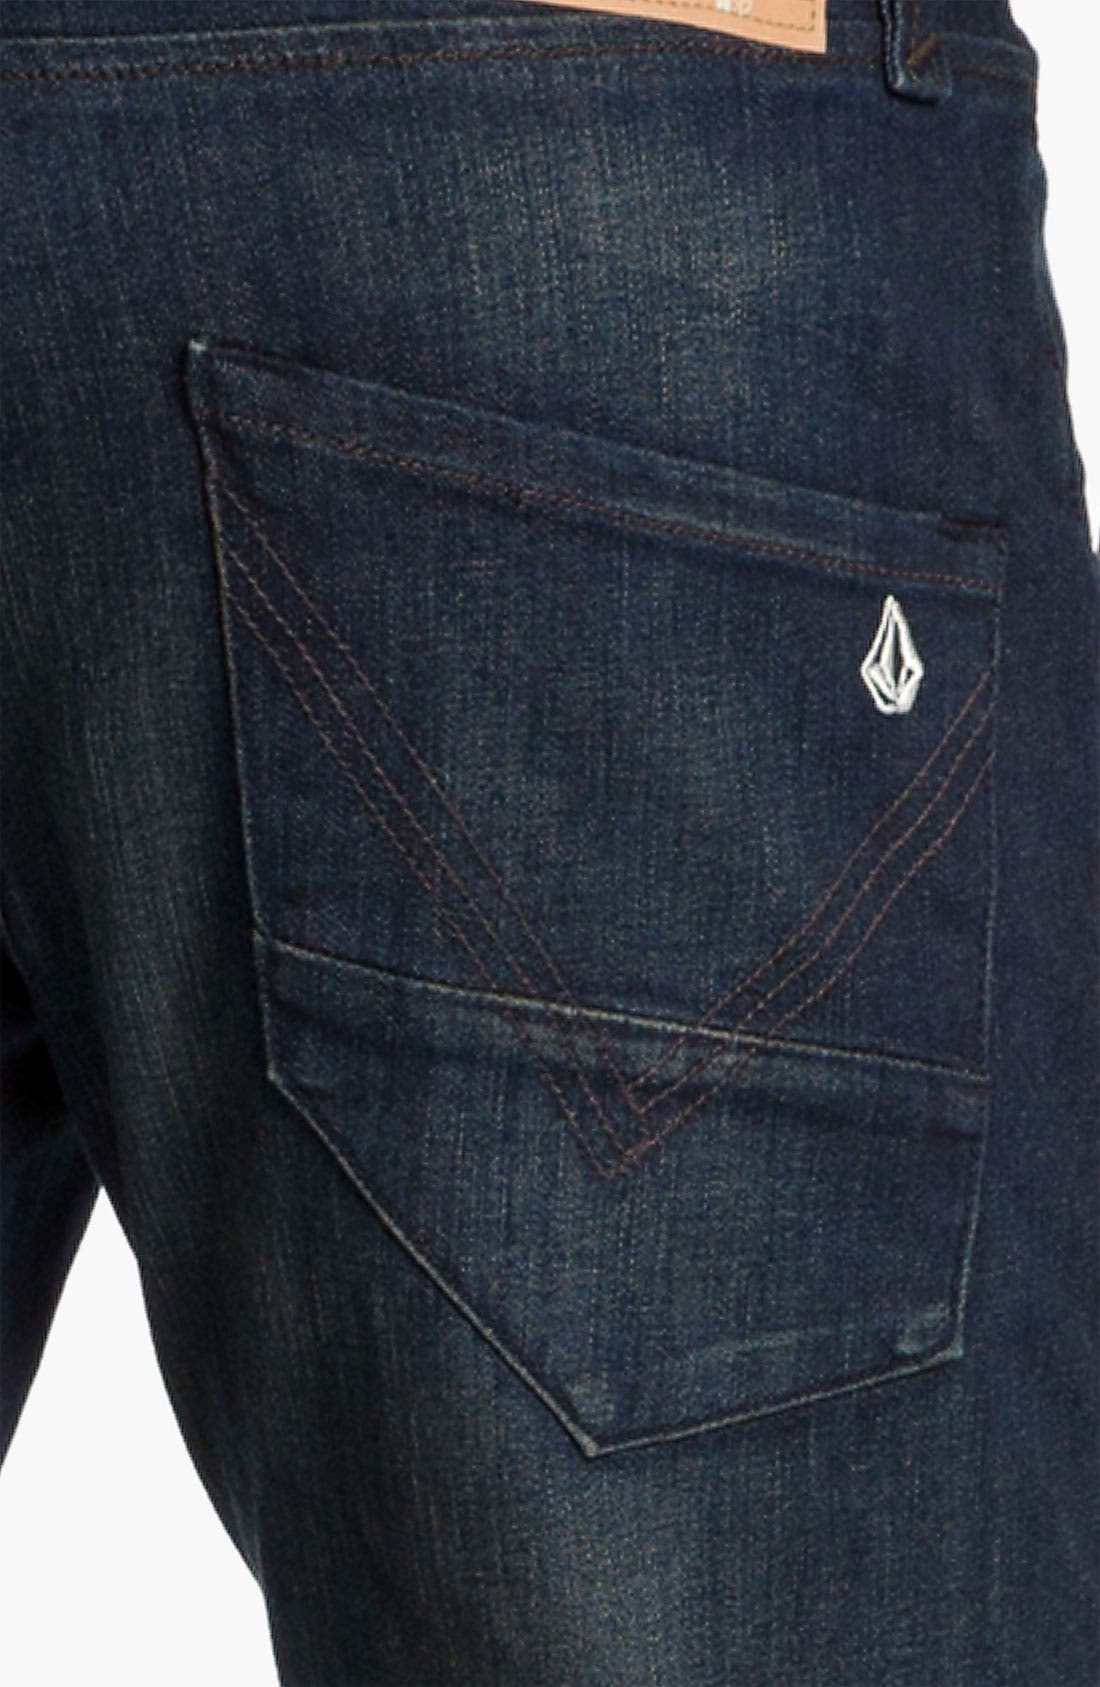 Alternate Image 4  - Volcom 'Nova' Slim Straight Leg Jeans (Dark Room Stretch) (Online Exclusive)